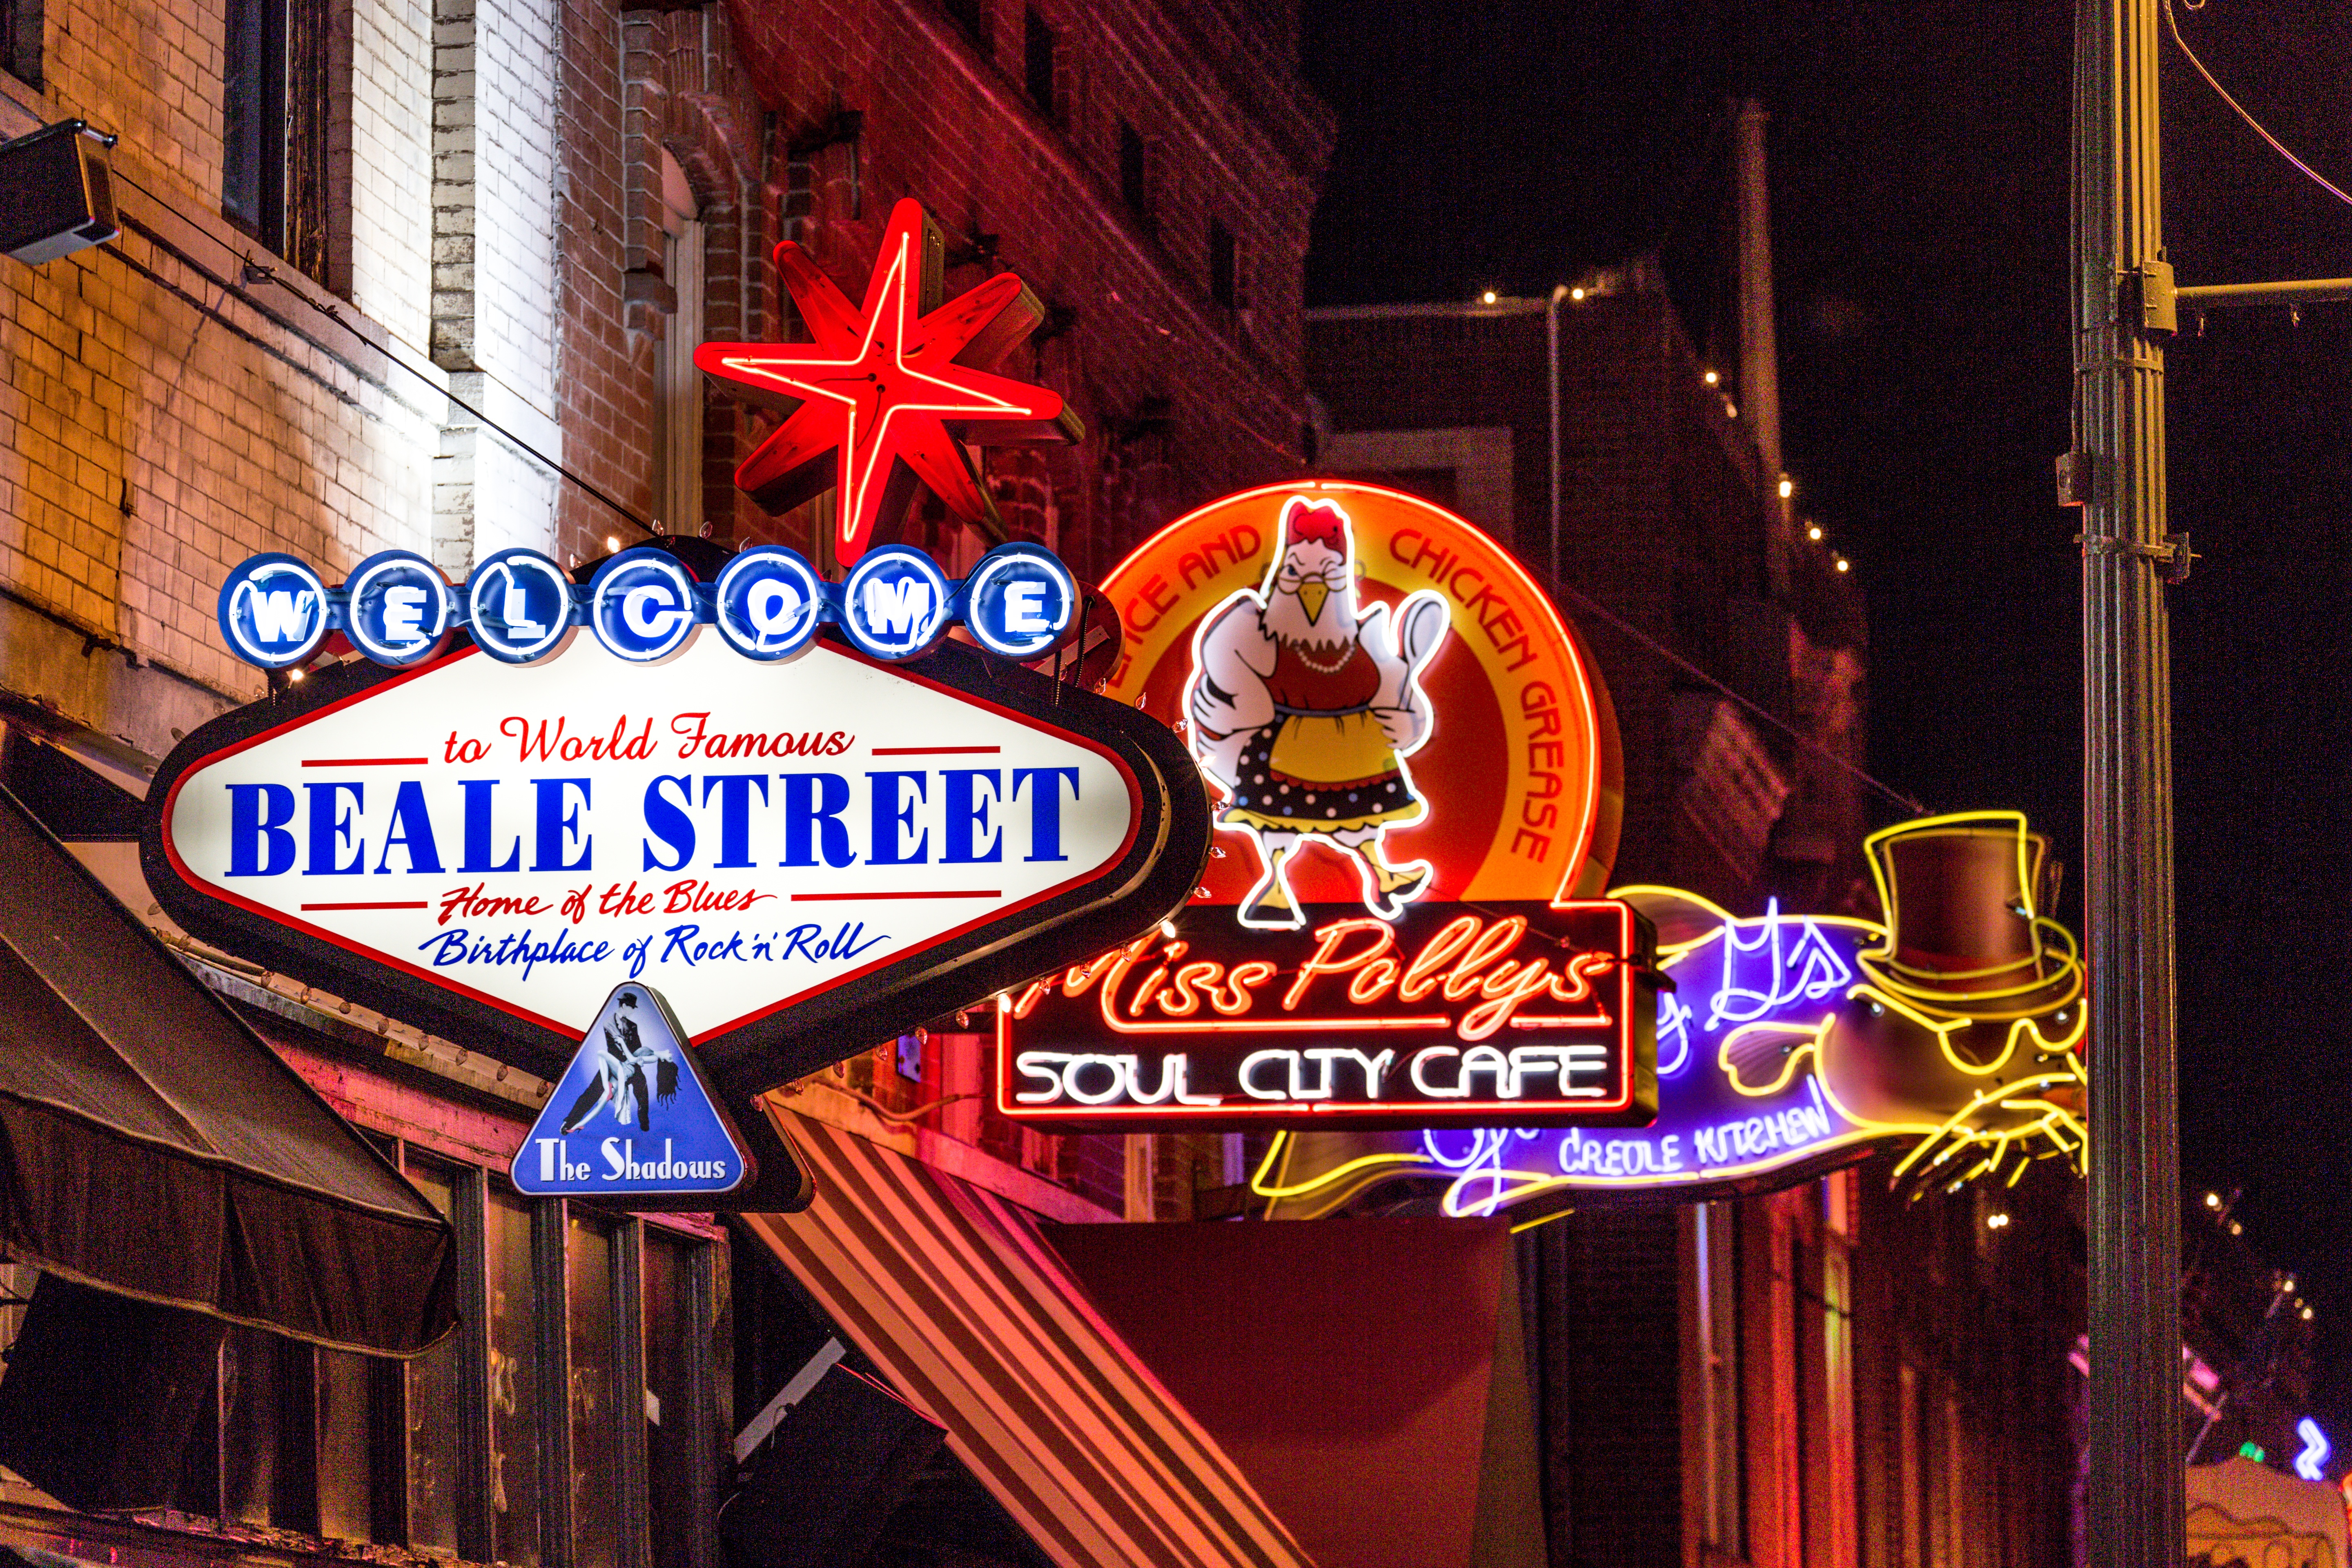 Beale Street, Memphis, Tennessee, USA